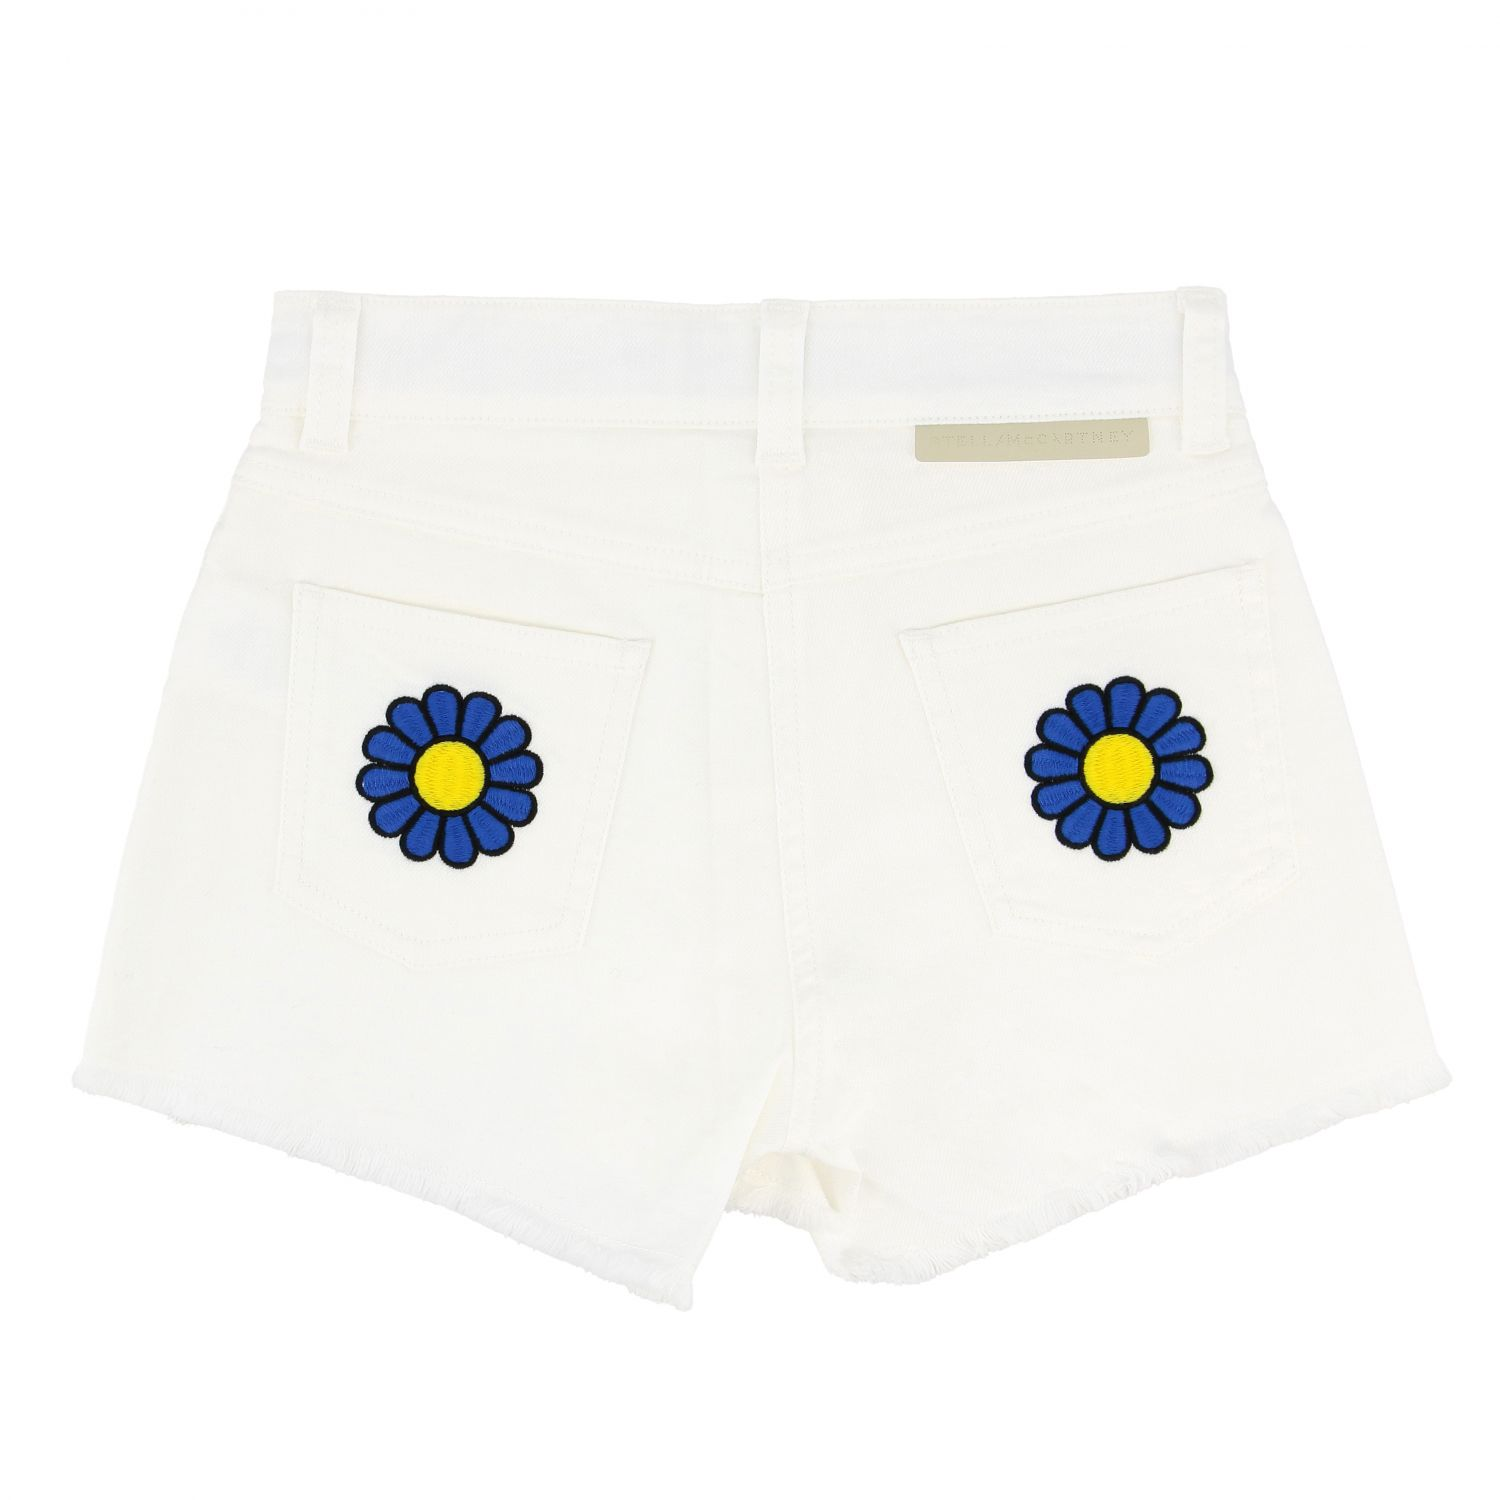 Stella McCartney shorts with floral embroidery white 2